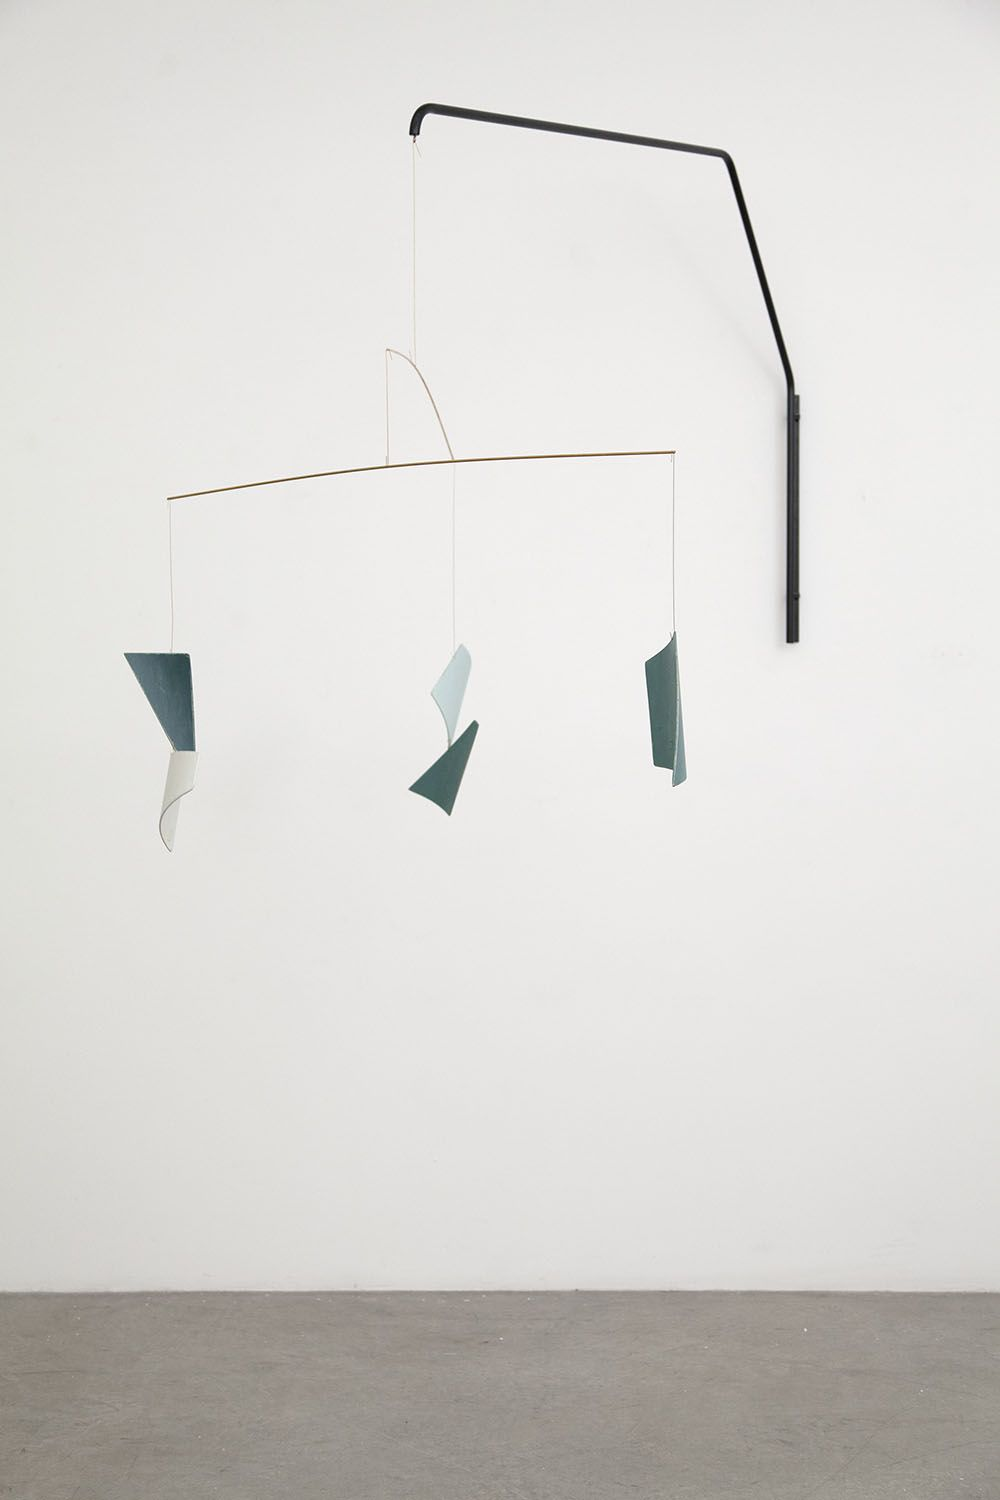 Martin Boyce A Library of Leaves (A Thousand Future Skies), 2014